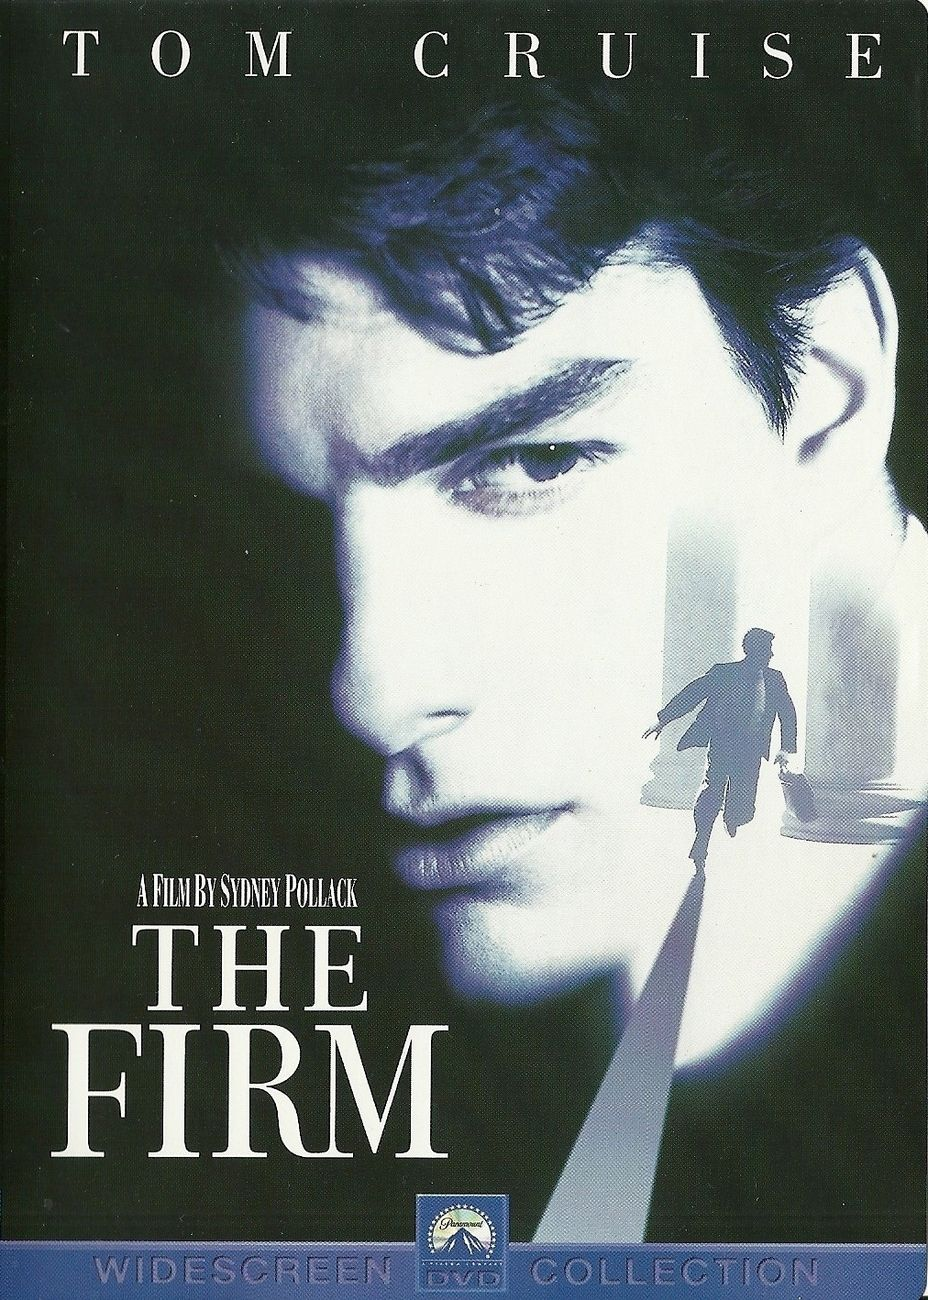 The Firm #movies #bestmovies #films